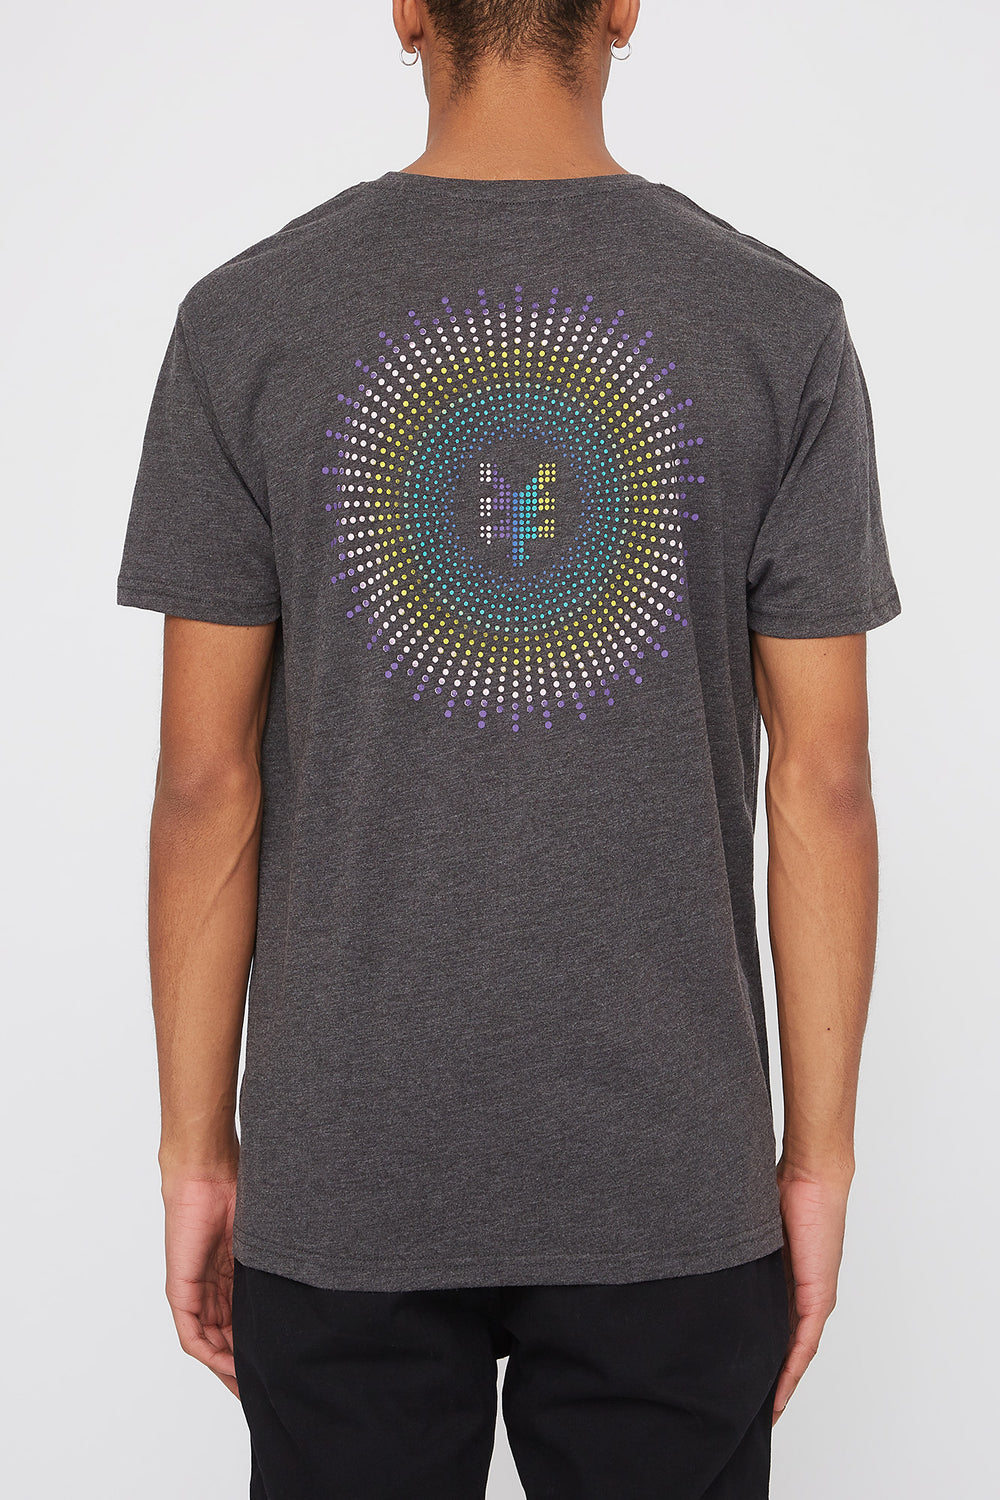 Zoo York Mens Rainbow Dots T-Shirt Charcoal